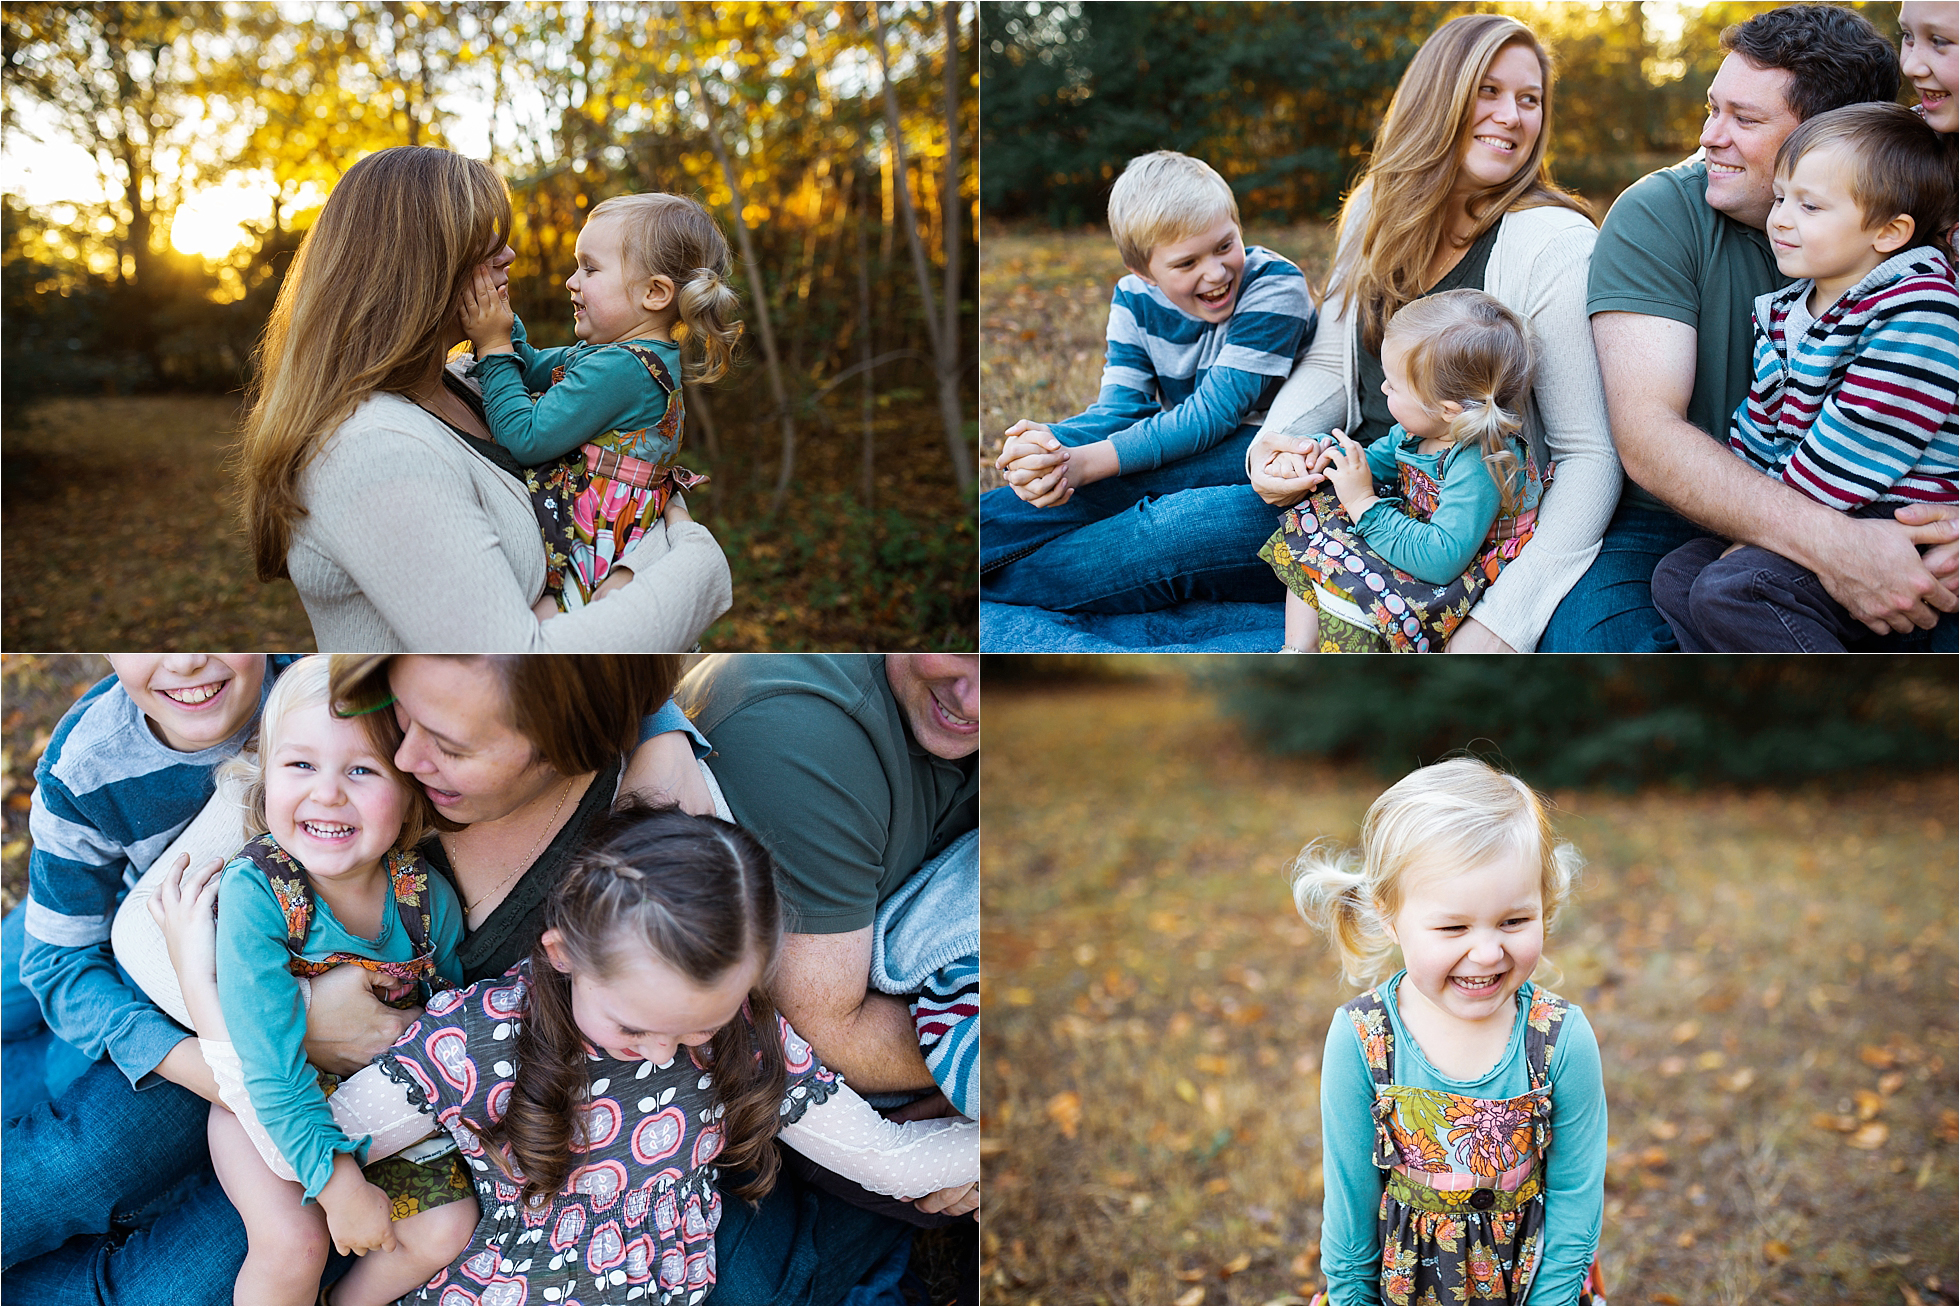 fall-family-photo-session-madison-huntsville-alabama-mary-colleen-photography-17